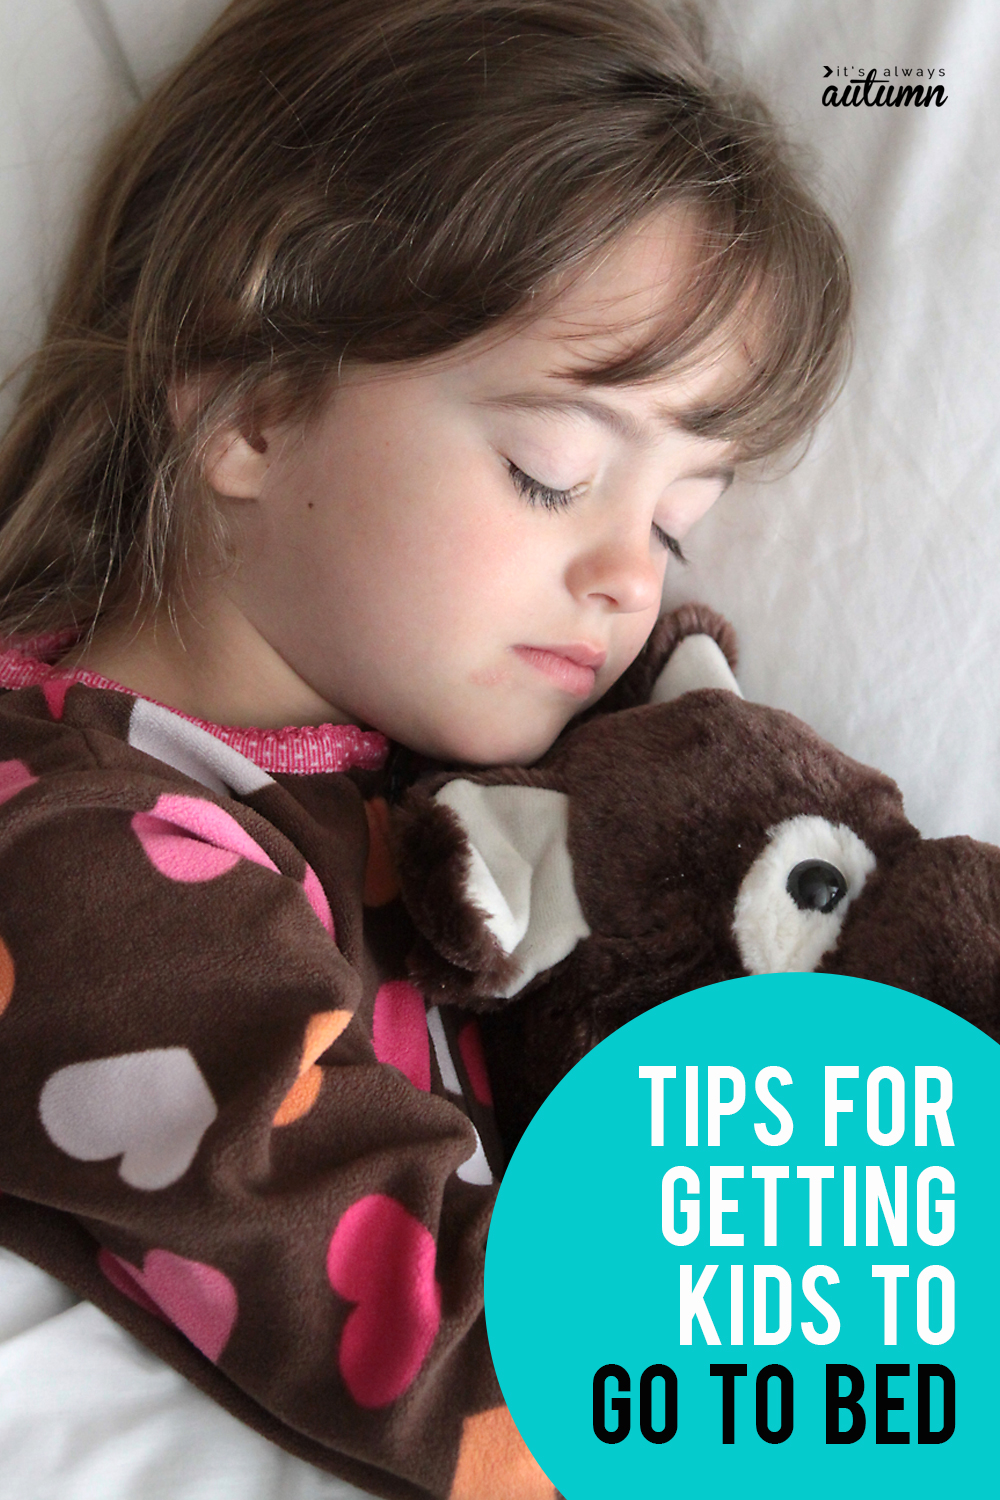 Lots of great ideas for getting little kids to go to bed and to stay there!